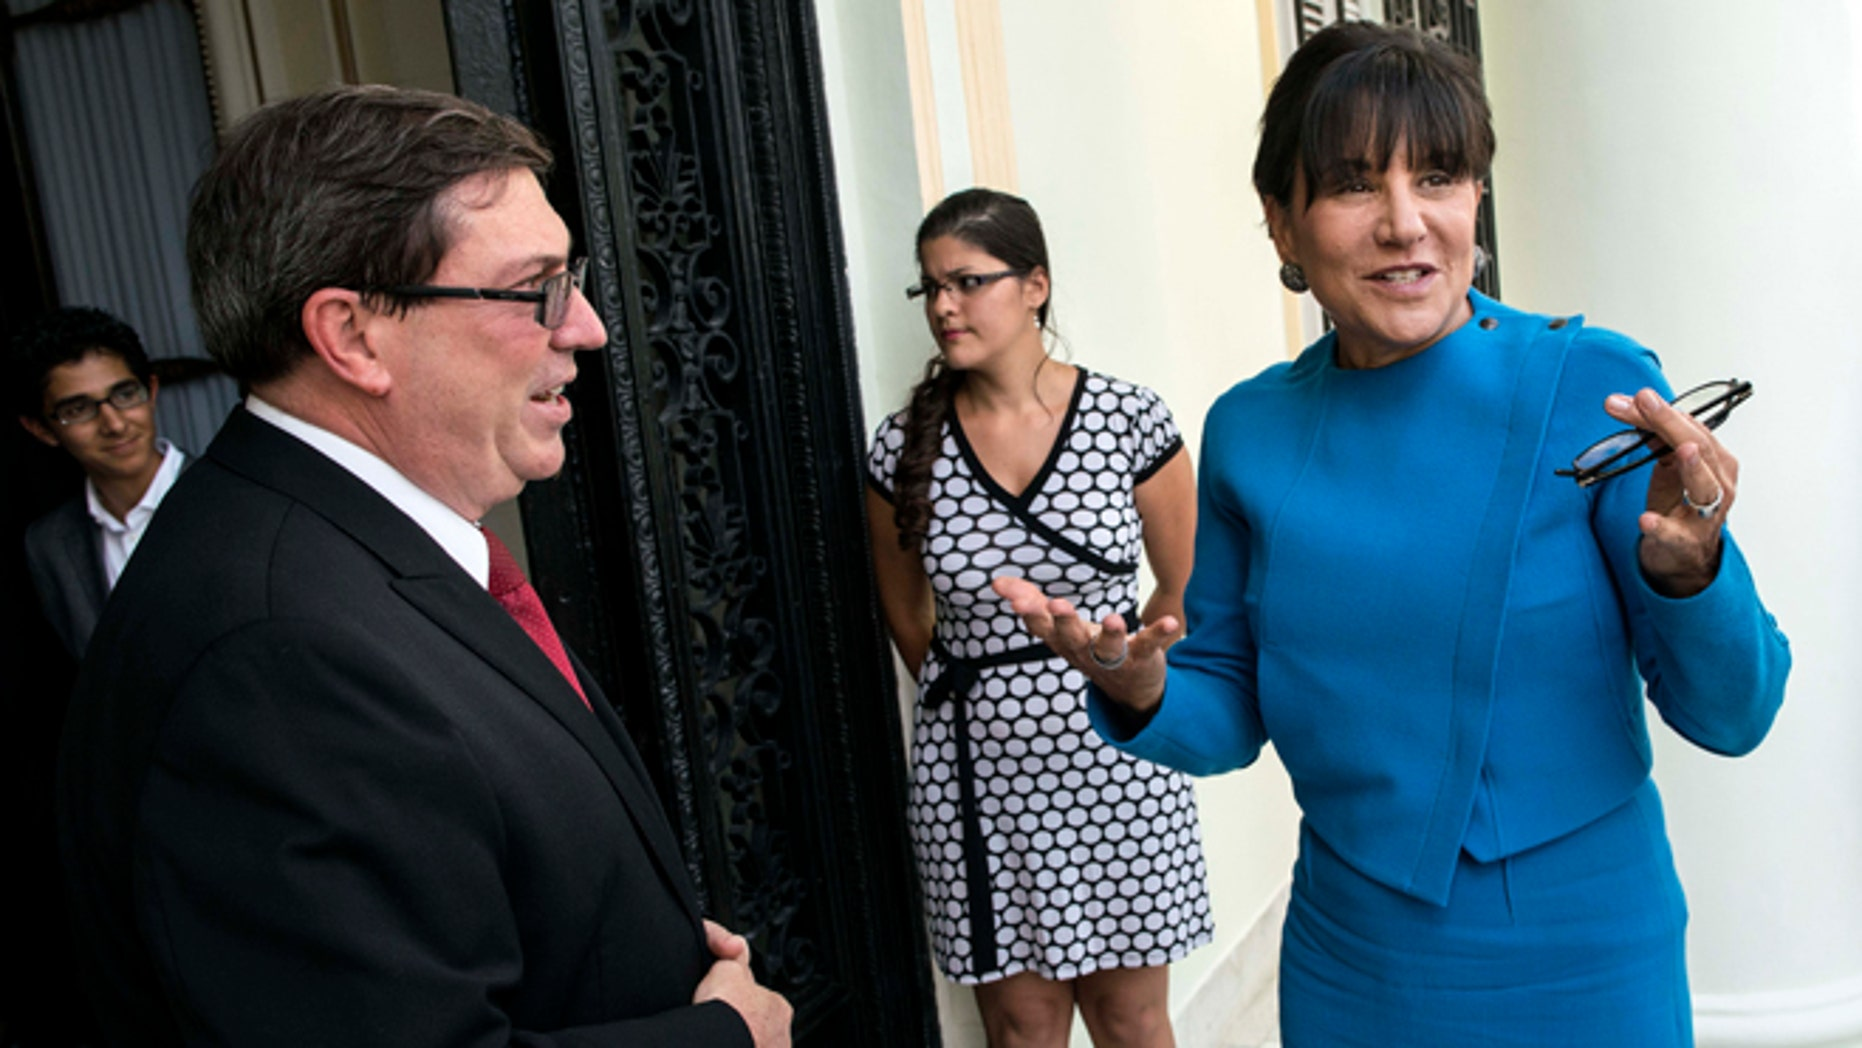 U.S. Commerce Secretary Penny Pritzker, right, talks with Cuba's Foreign Minister Bruno Rodriguez before a meeting in Havana, Cuba, Wednesday, Oct. 7, 2015. Pritzker is leading a delegation of officials from the U.S. Treasury, Commerce and State departments for meetings with officials from Cuban government ministries and businesses.(AP Photo/Ramon Espinosa)